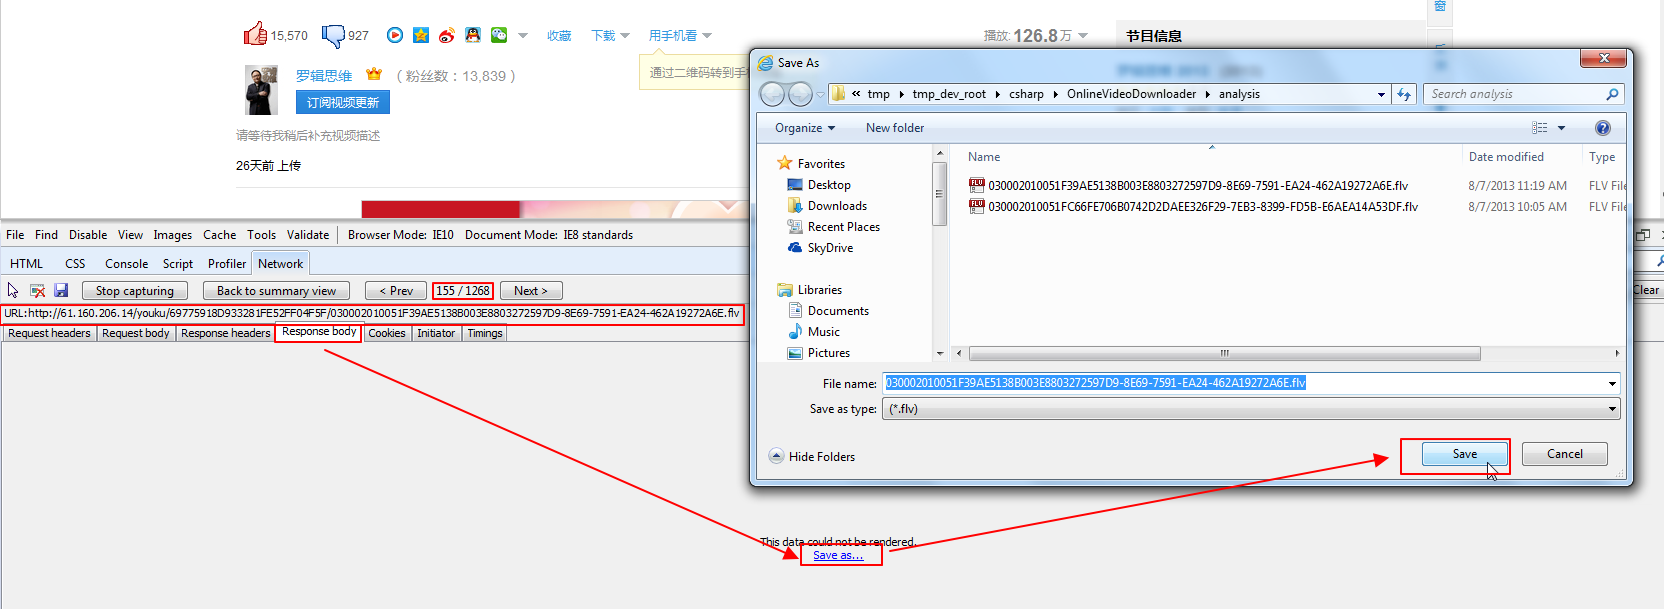 reponse body save as flv file